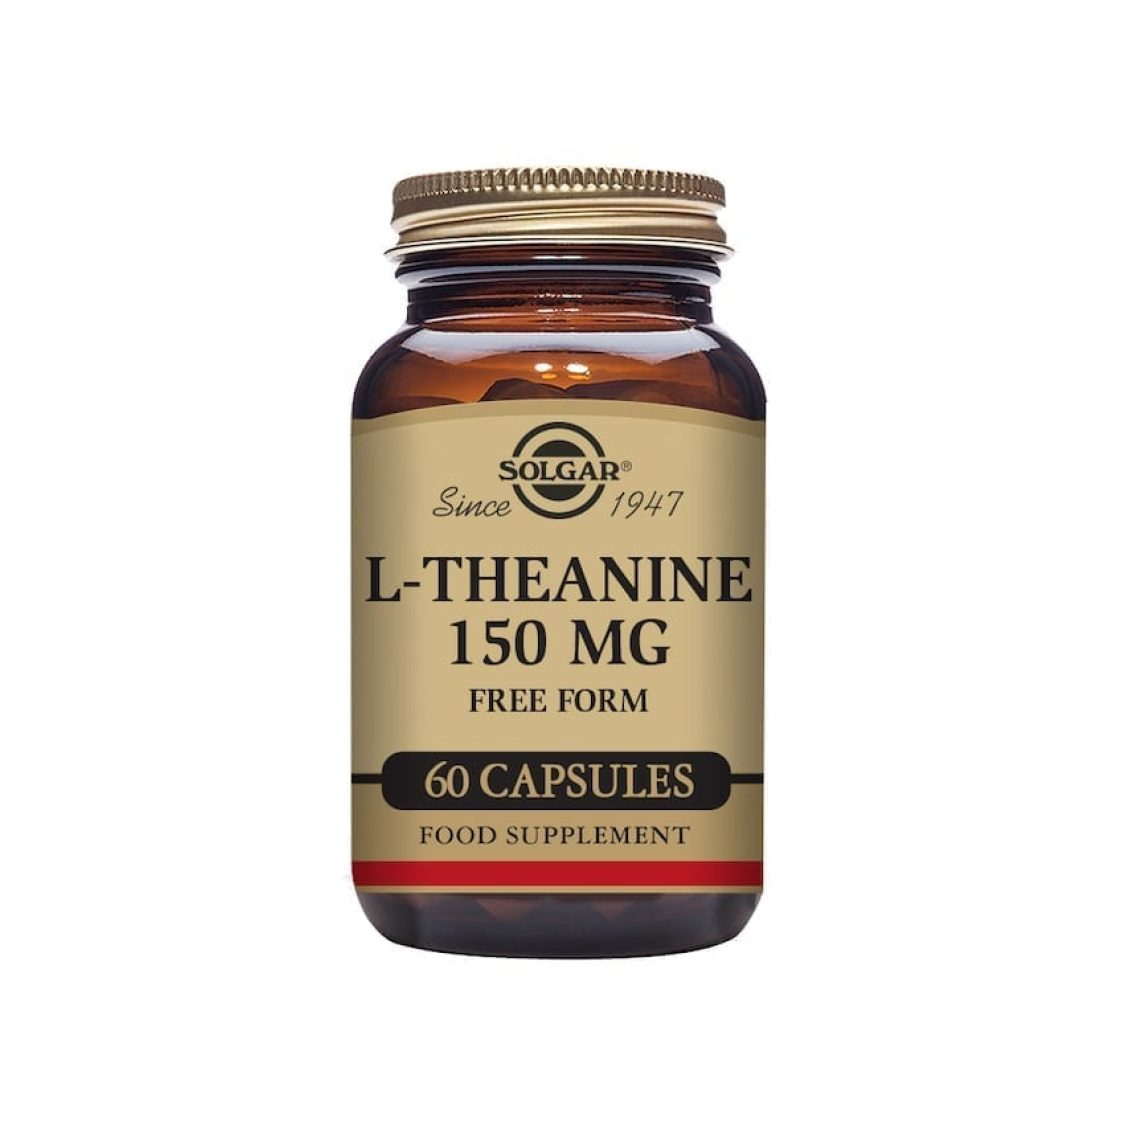 Solgar - Free Form Amino Acids - L-Theanine   - Size: 60